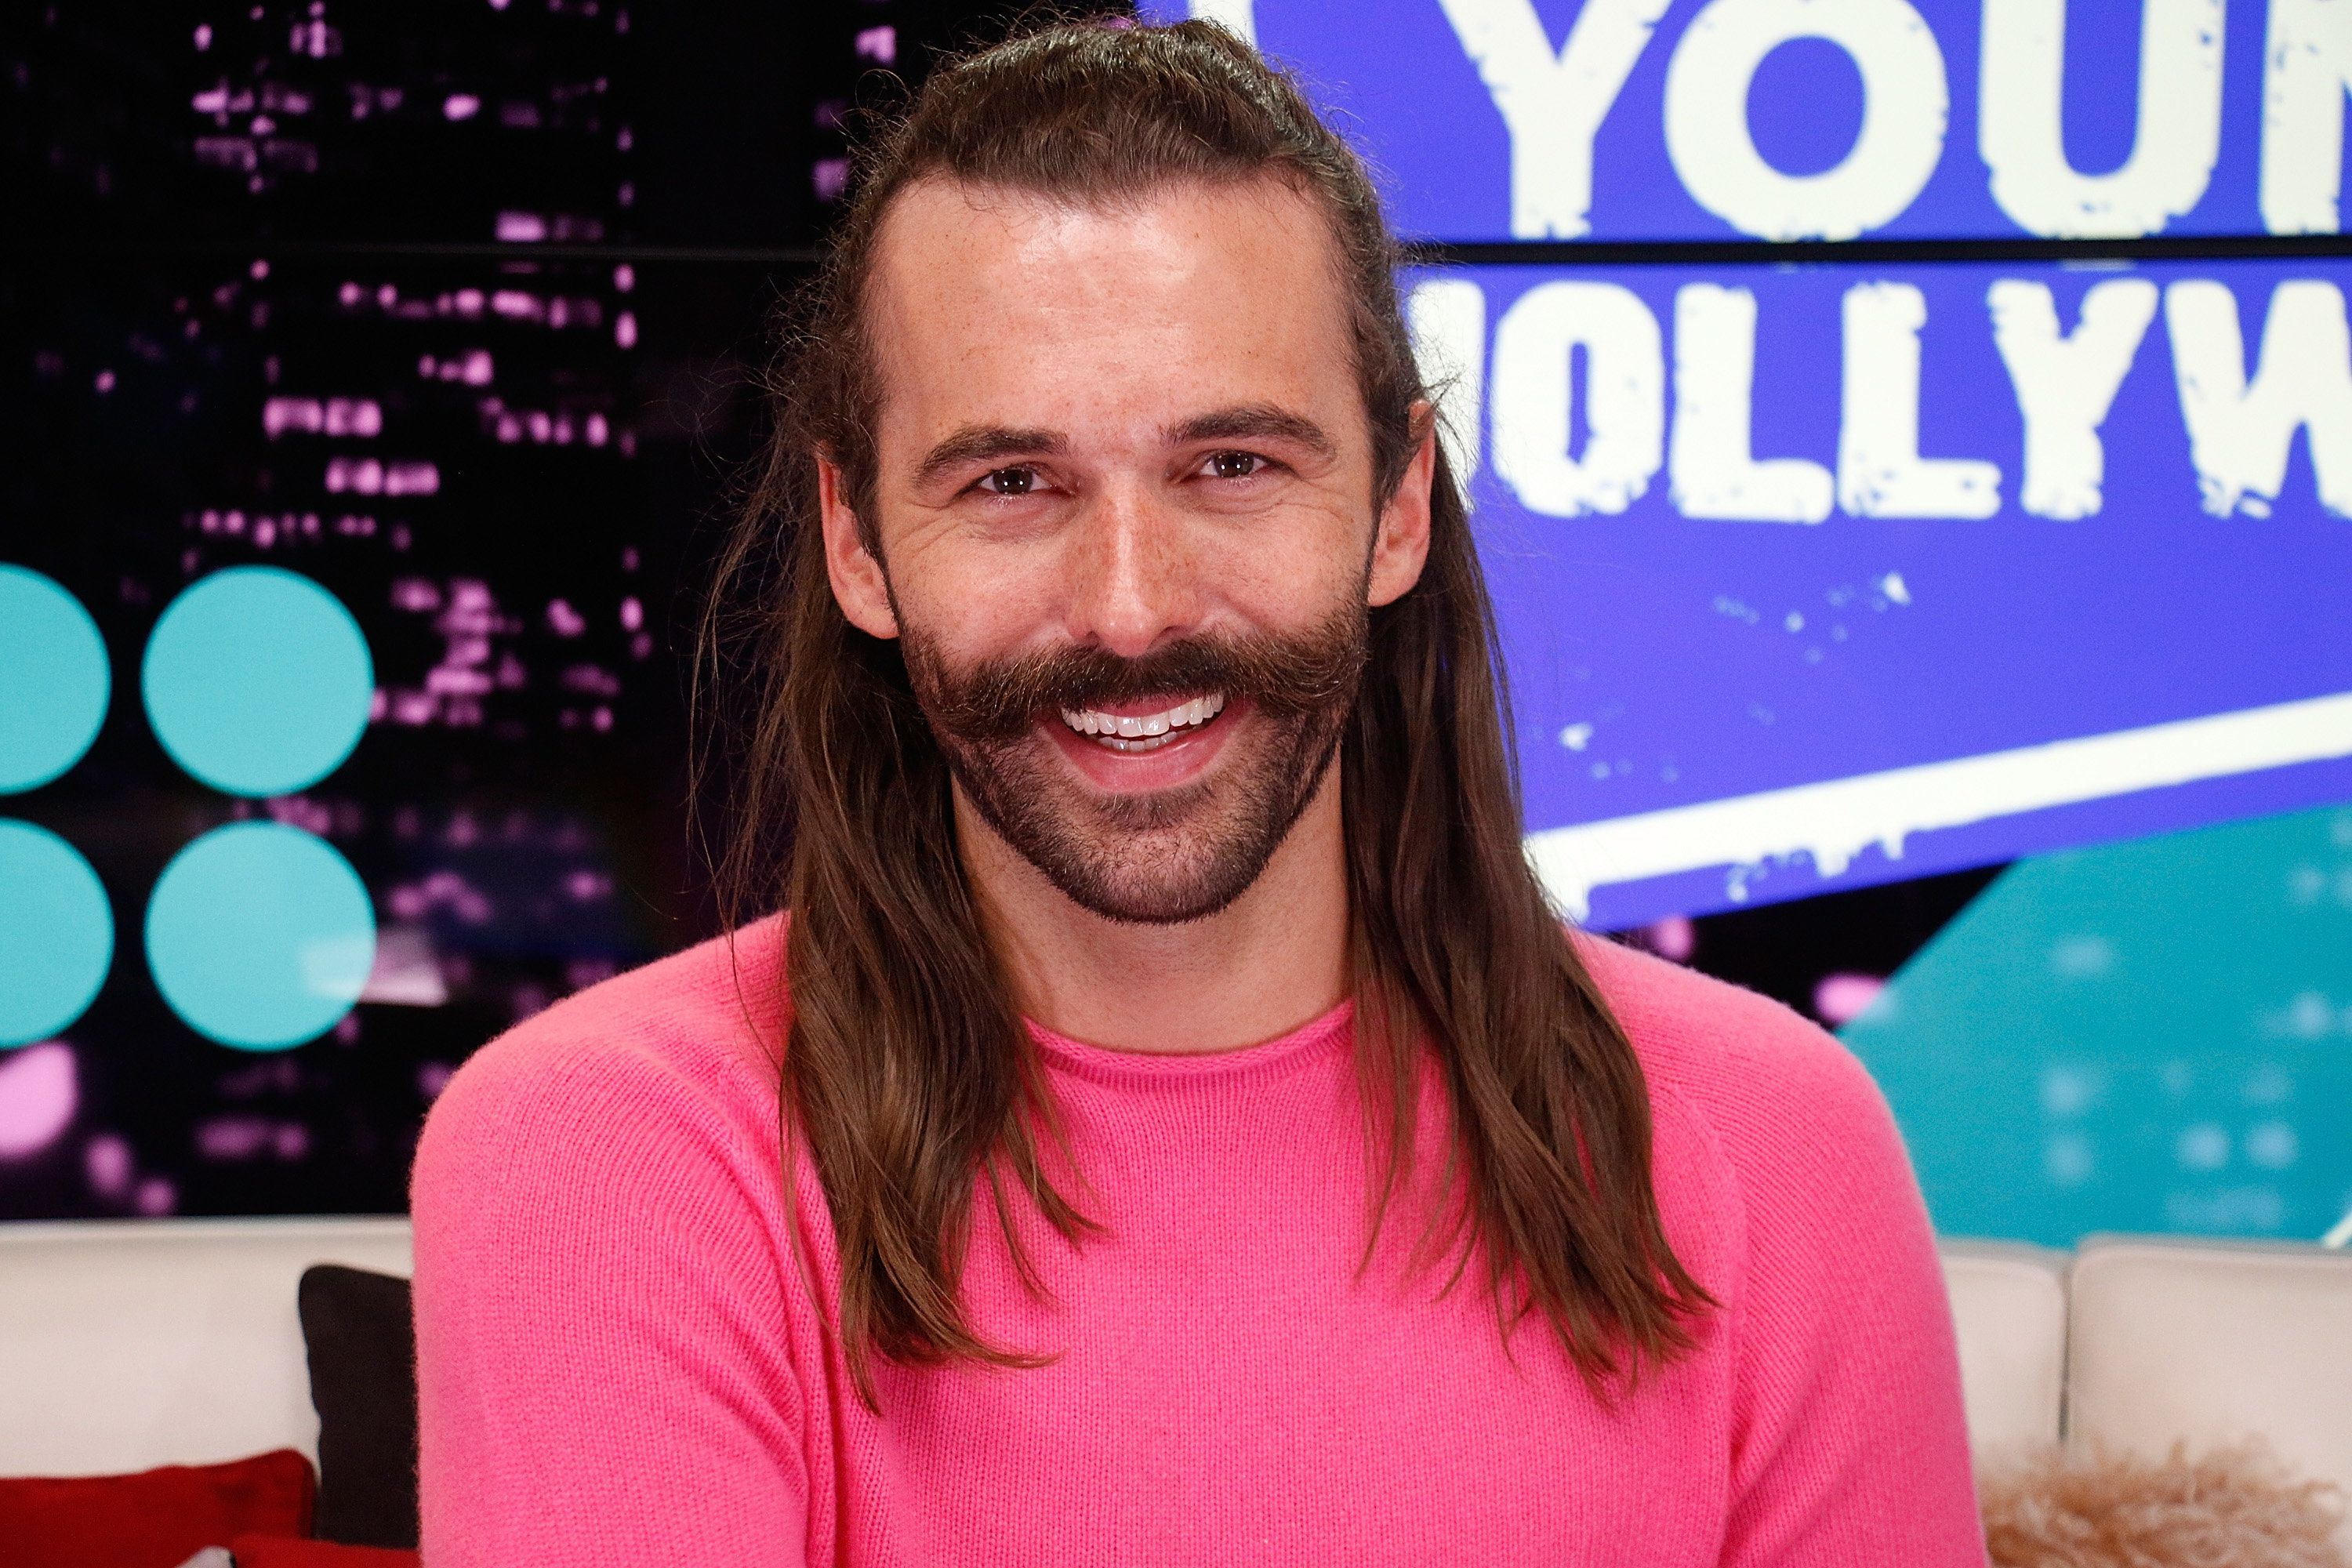 LOS ANGELES, CA - May 31: (EXCLUSIVE COVERAGE) Jonathan Van Ness from 'Queer Eye' visits the Young Hollywood Studio on May 31, 2017 in Los Angeles, California. (Photo by Mary Clavering/Young Hollywood/Getty Images)